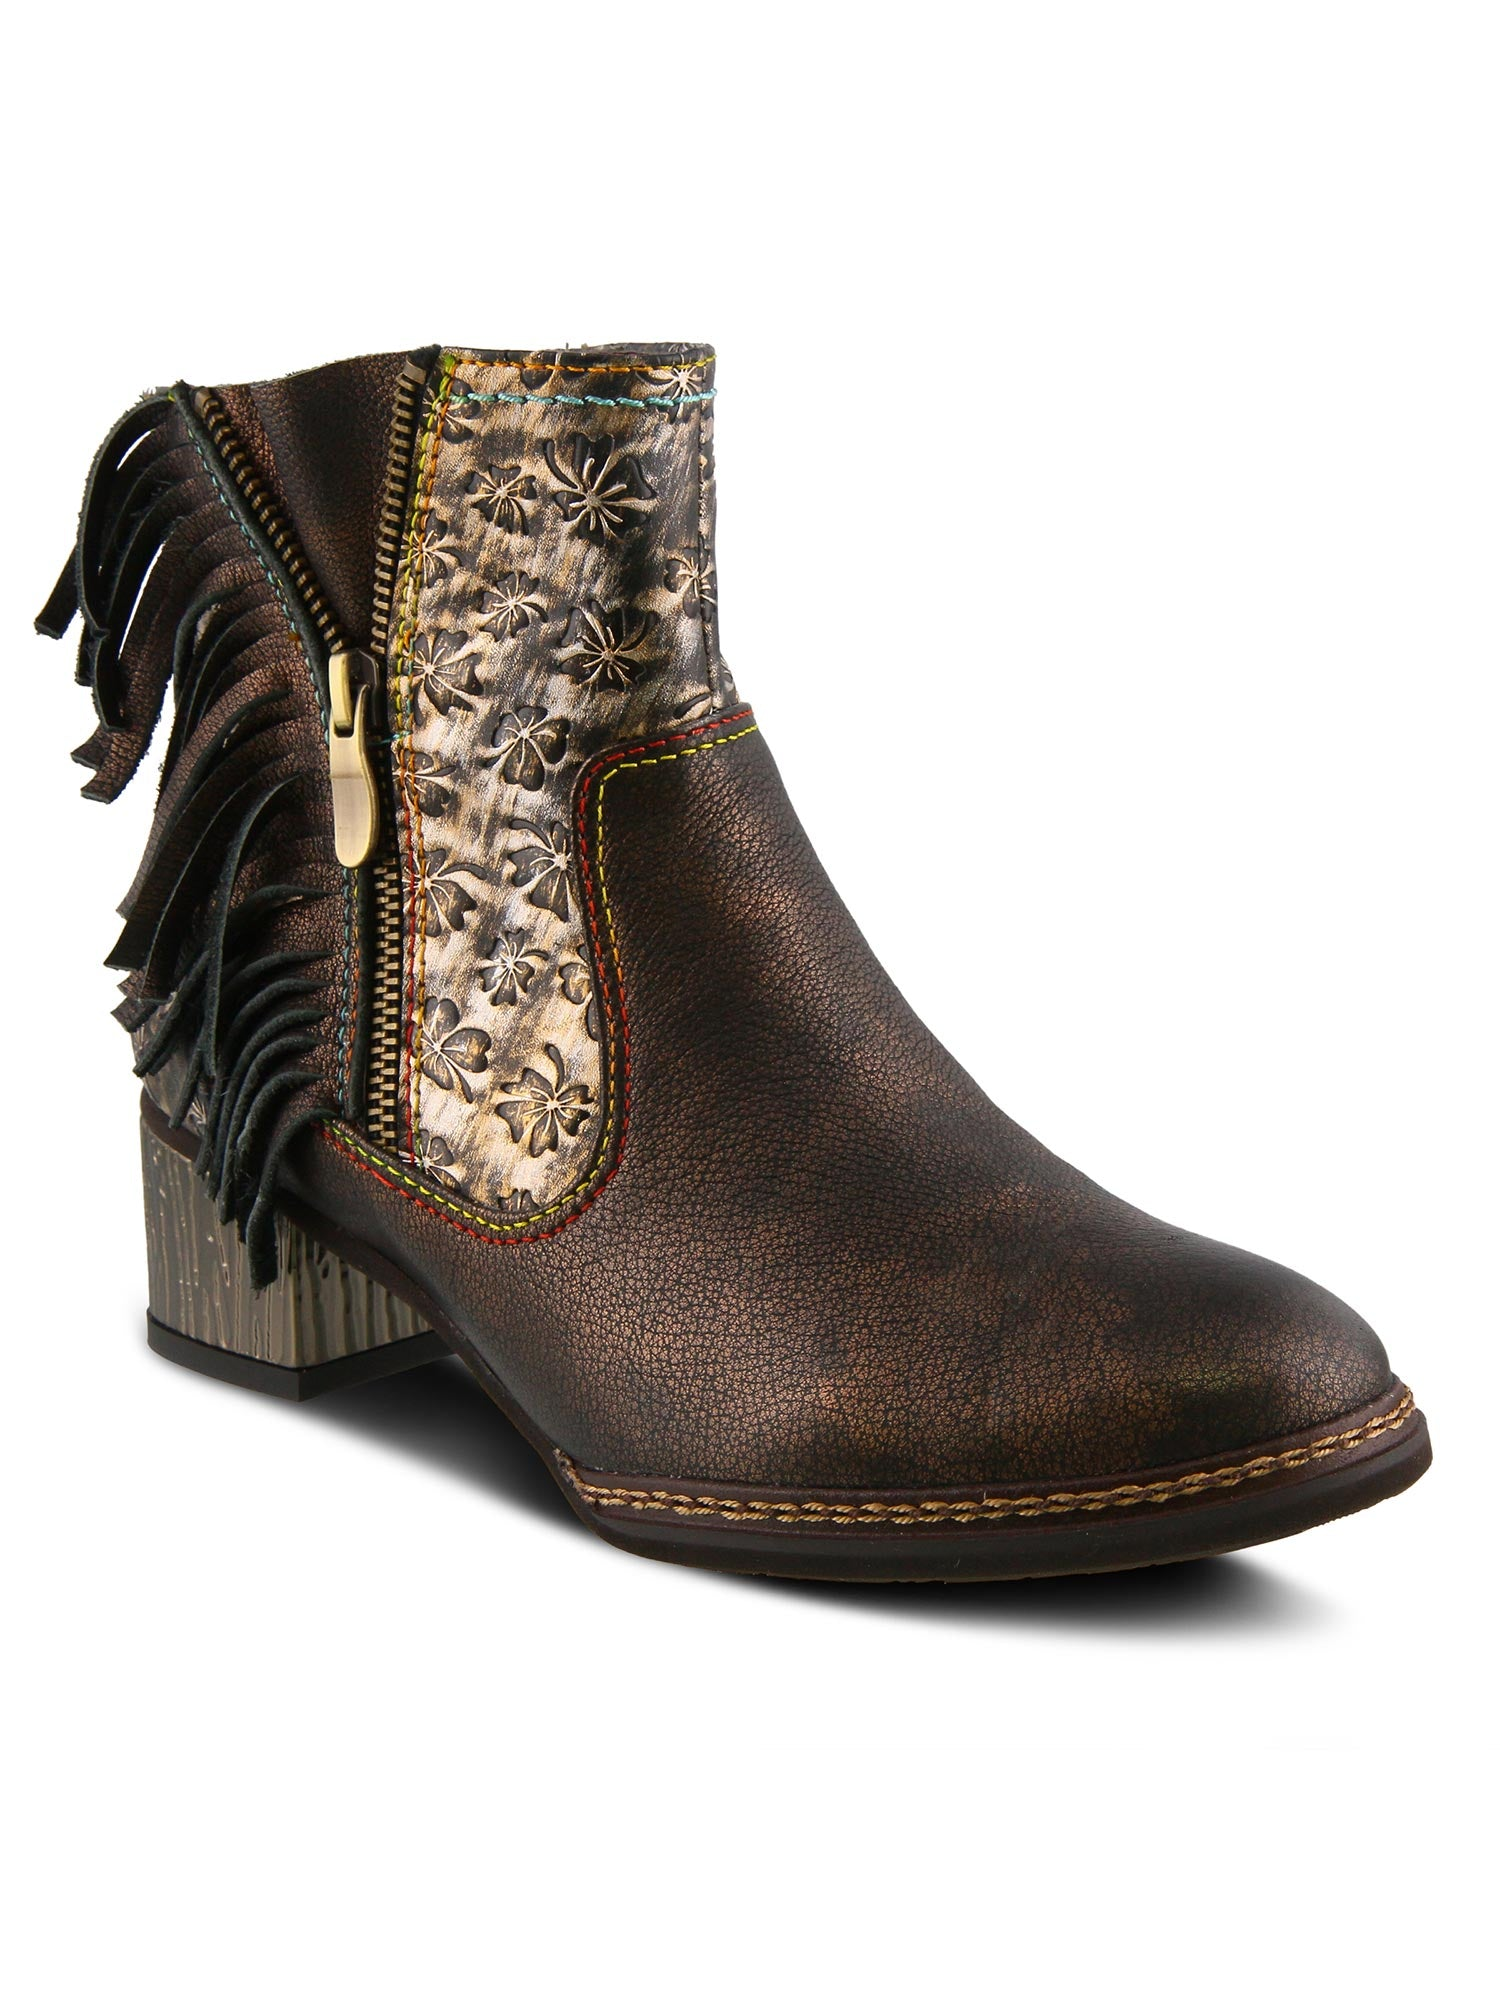 L'Artiste by Spring Step - Kami Fringe Bootie in Bronze Multi